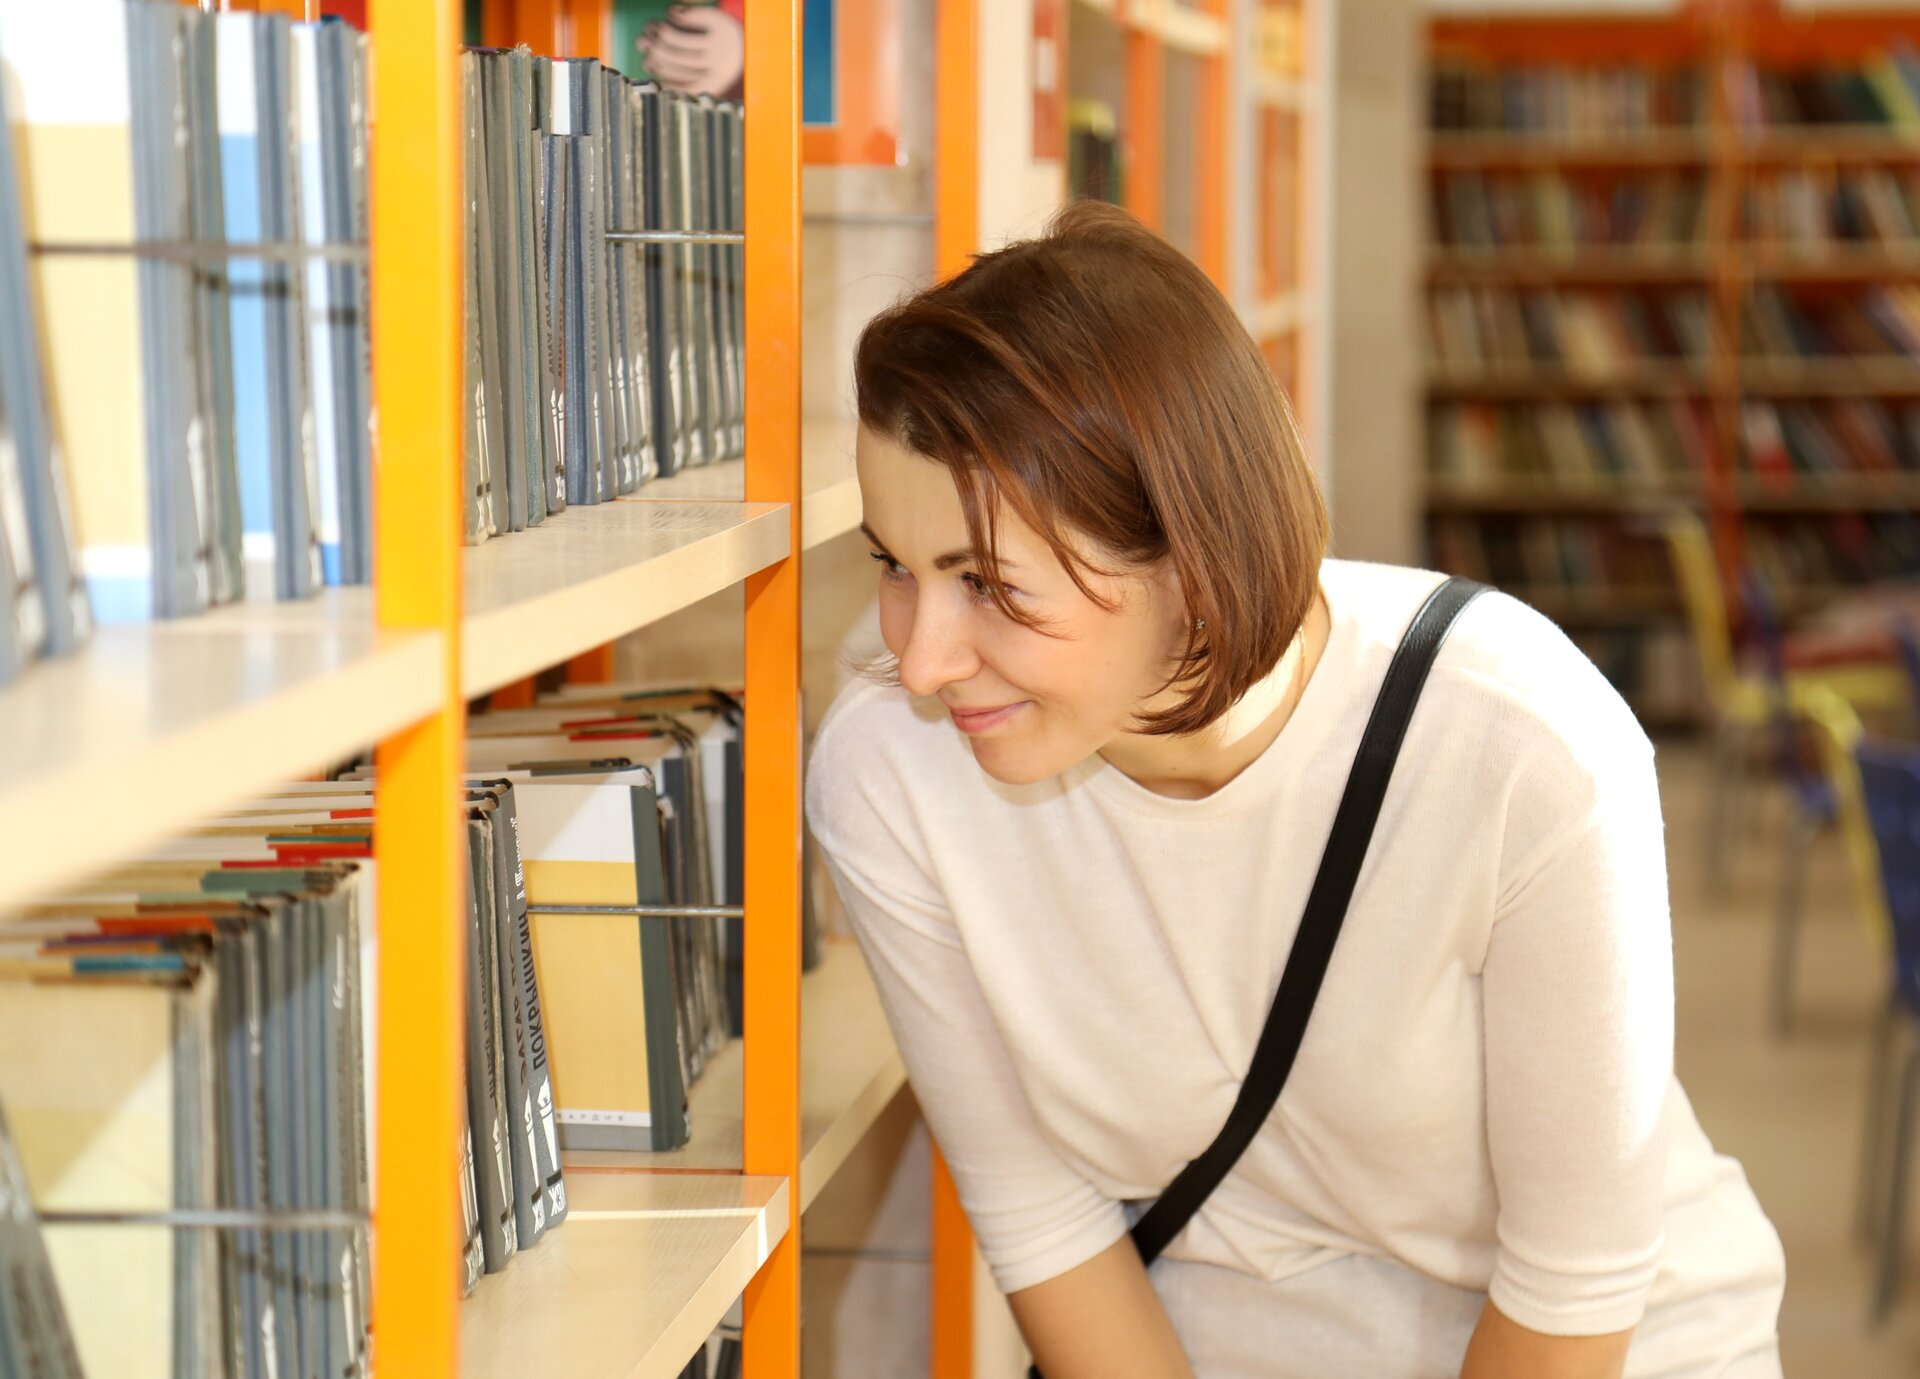 Woman browsing rows of bookcases